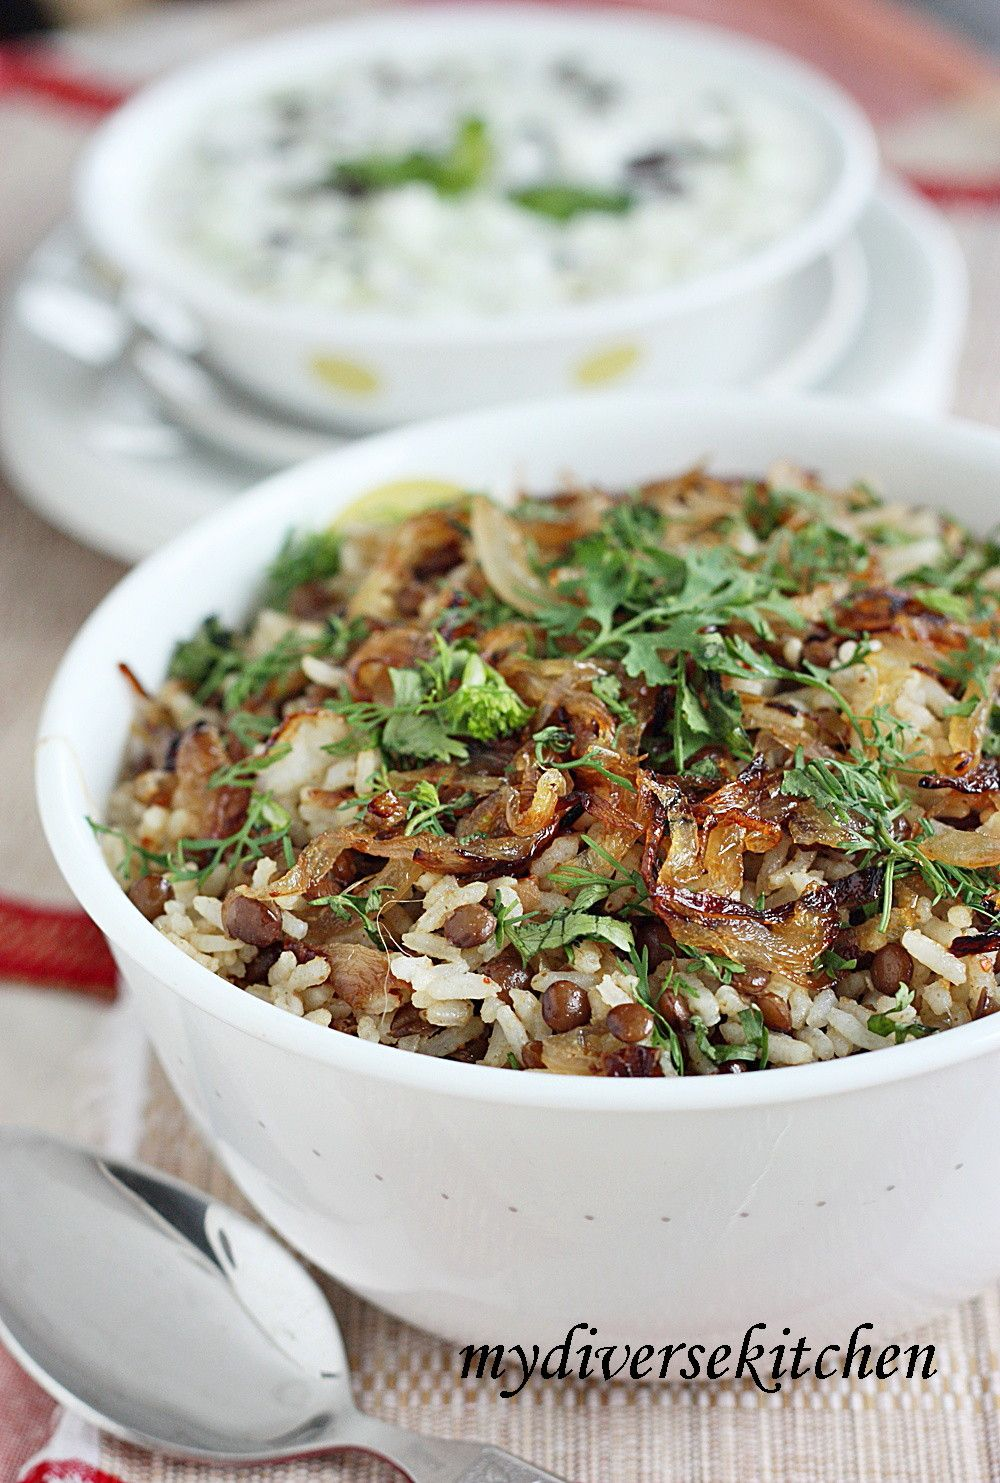 ... in Spiced Yogurt) And Mujadara (Lentils and Caramelized Onion Pilaf